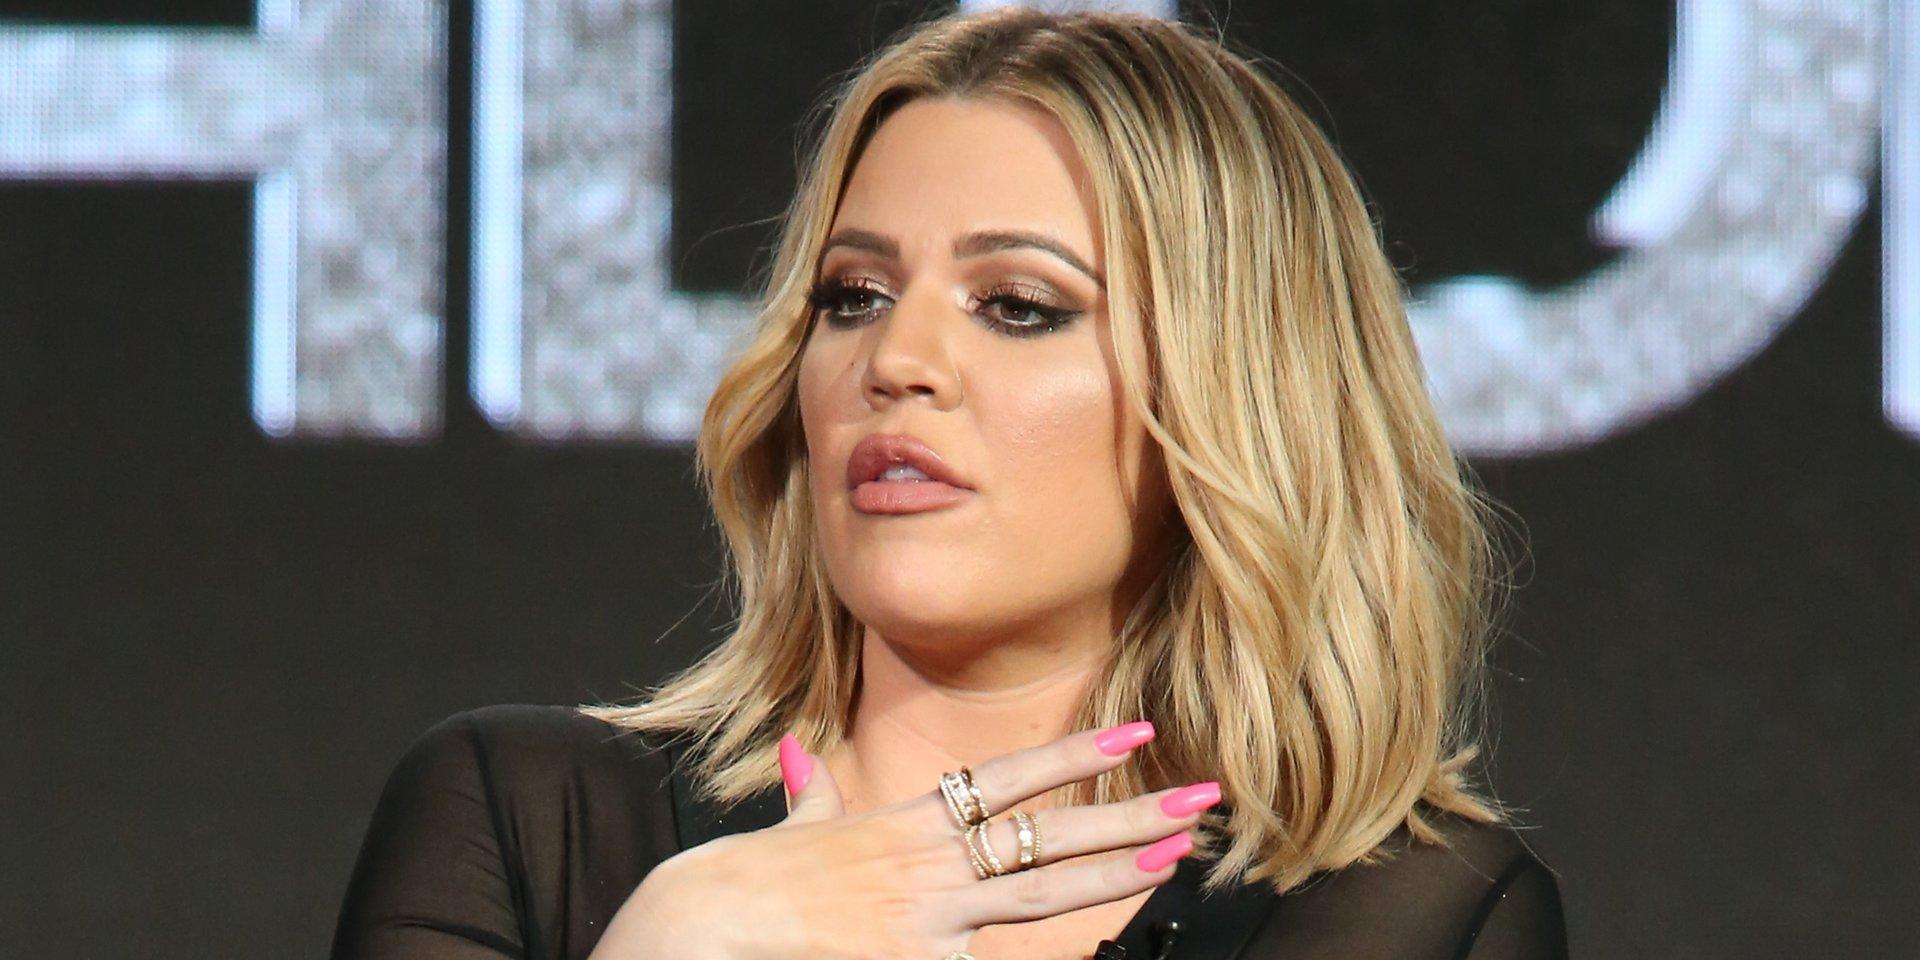 Khloe Kardashian Is Reportedly Devastated Because Tristan Thompson Did Not Fight For Her